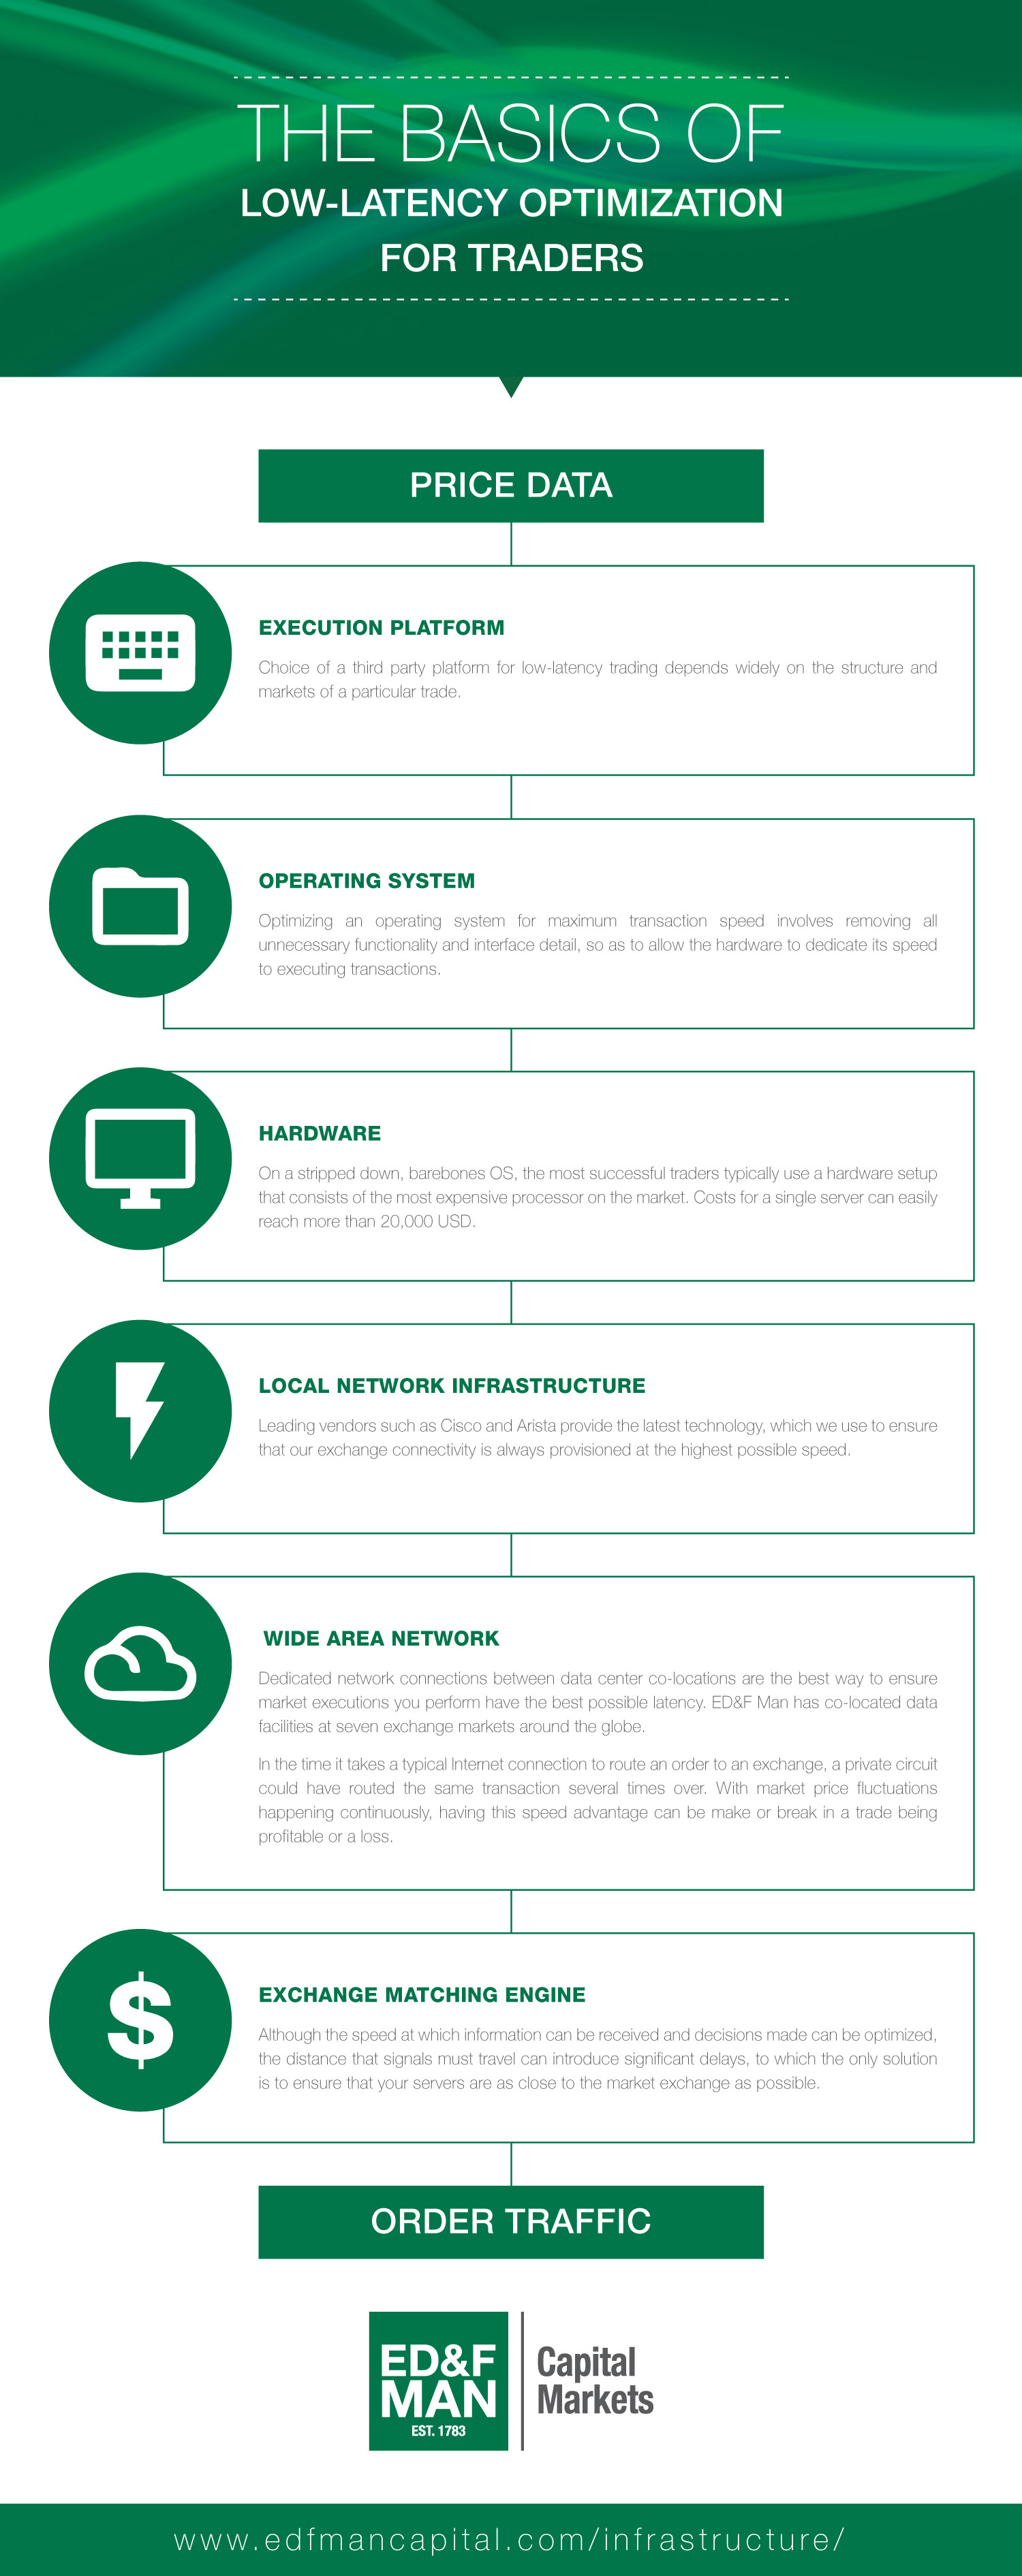 The Basics of Low-Latency Optimization for Traders Infographic